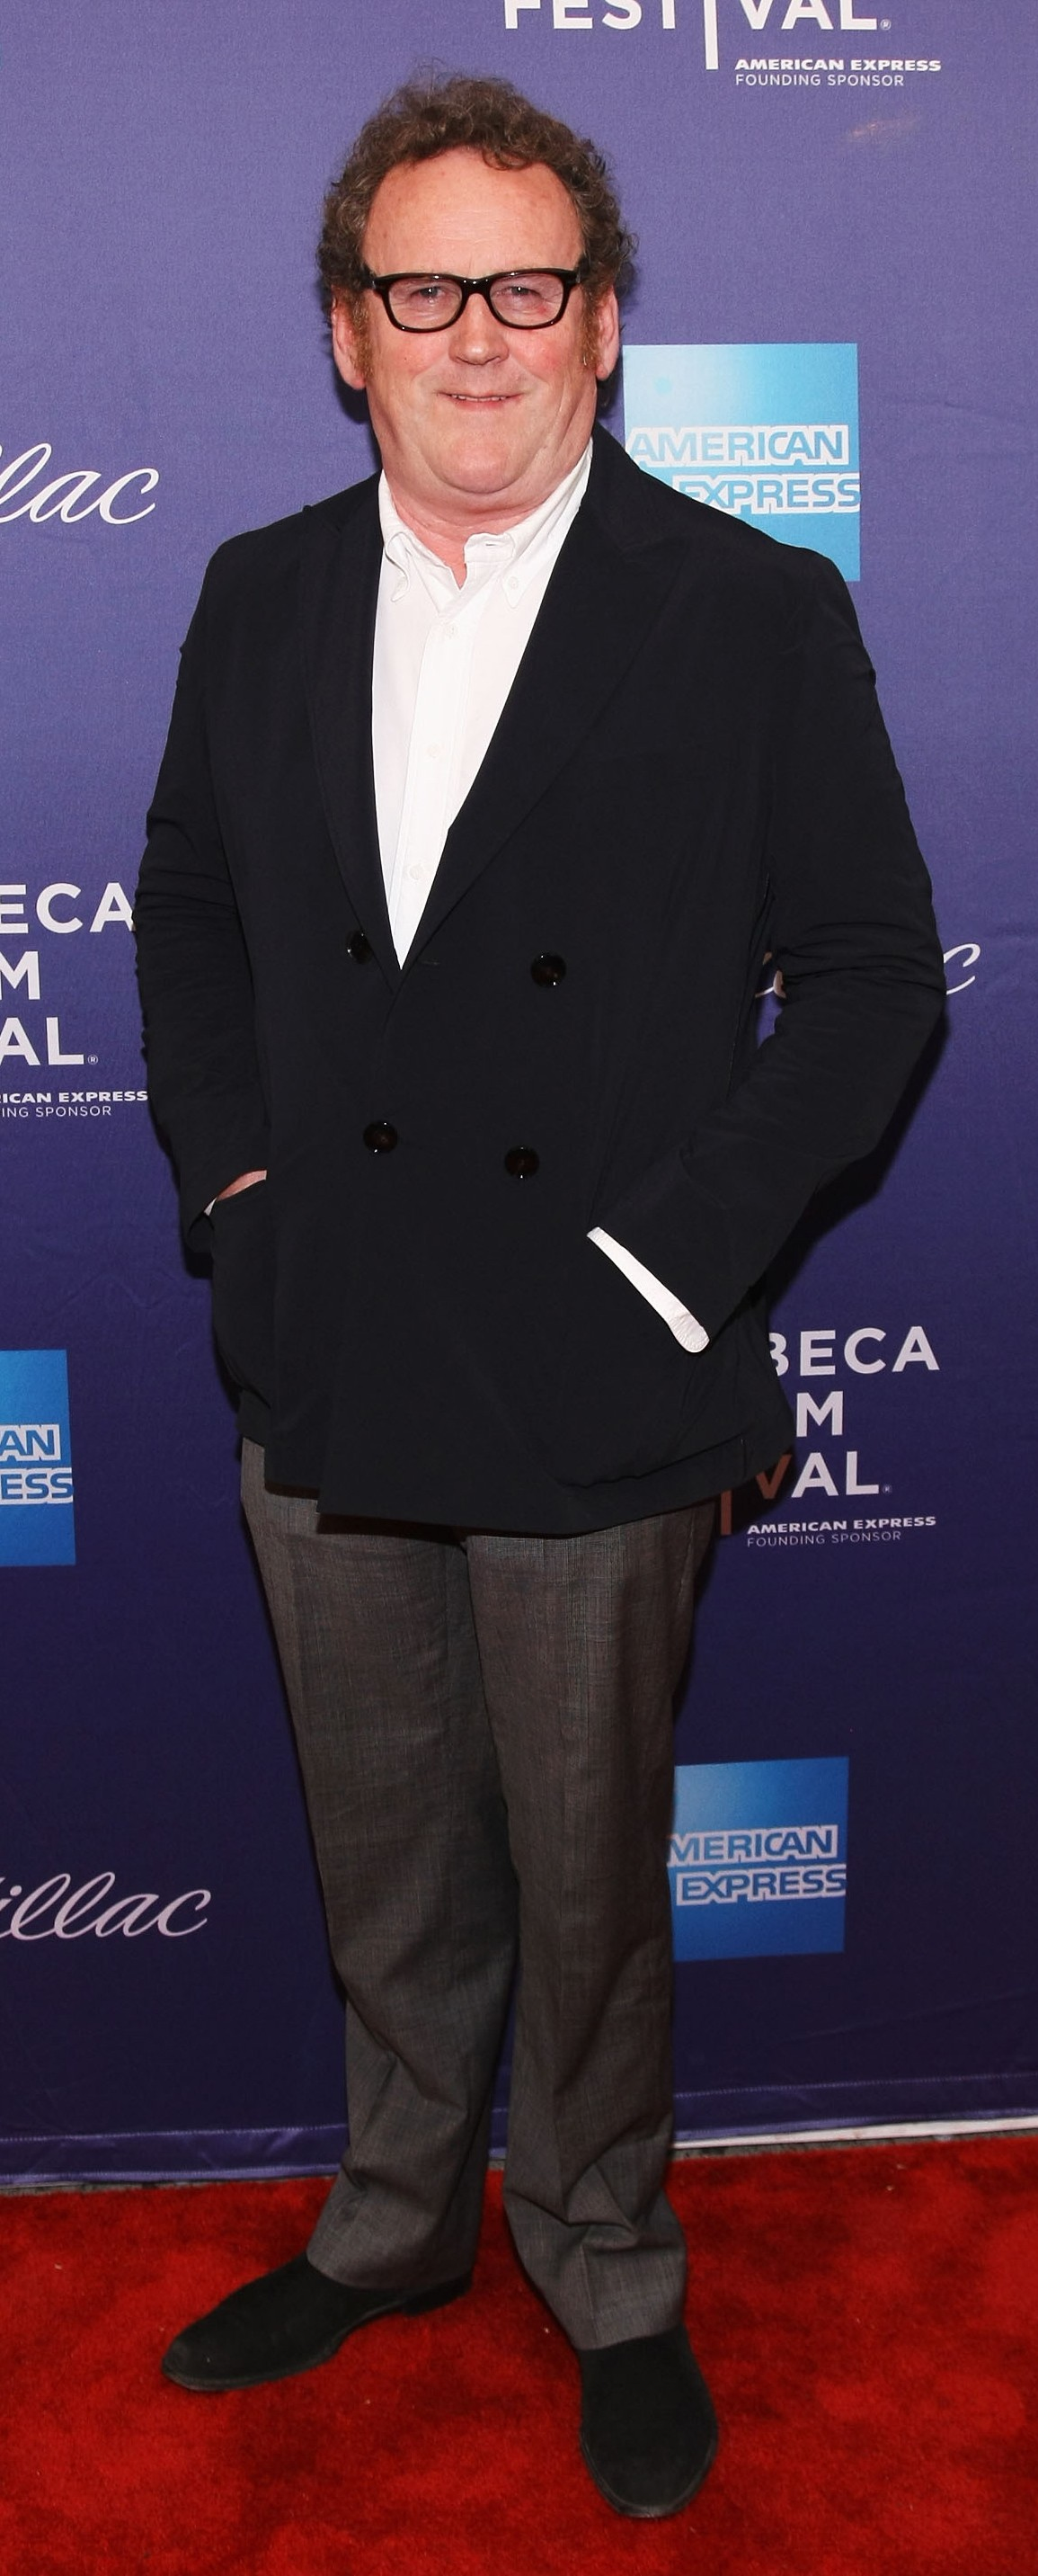 Colm Meaney: If I watched reality TV, I'd probably kill myself